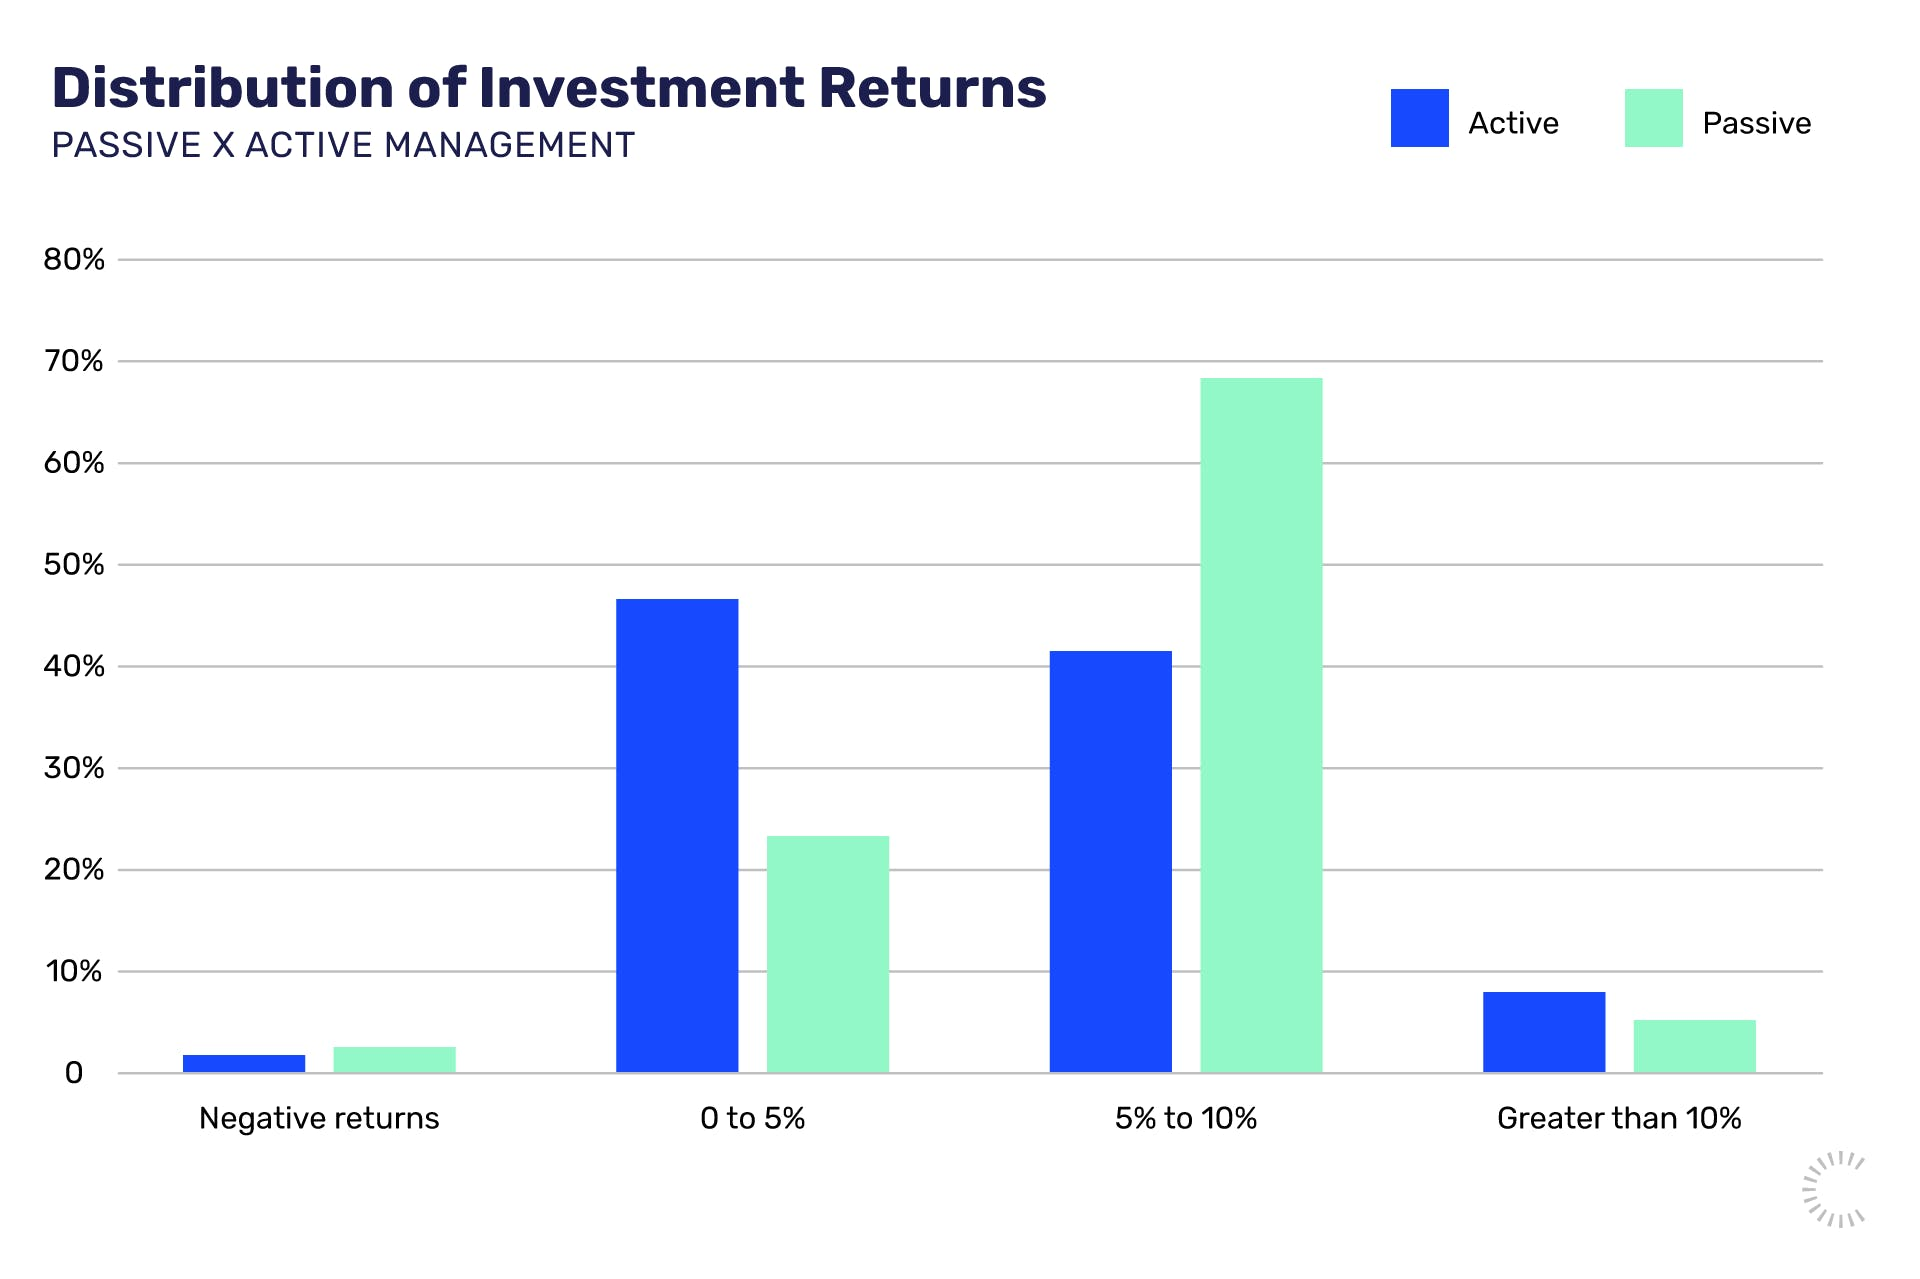 Distribution of investment returns